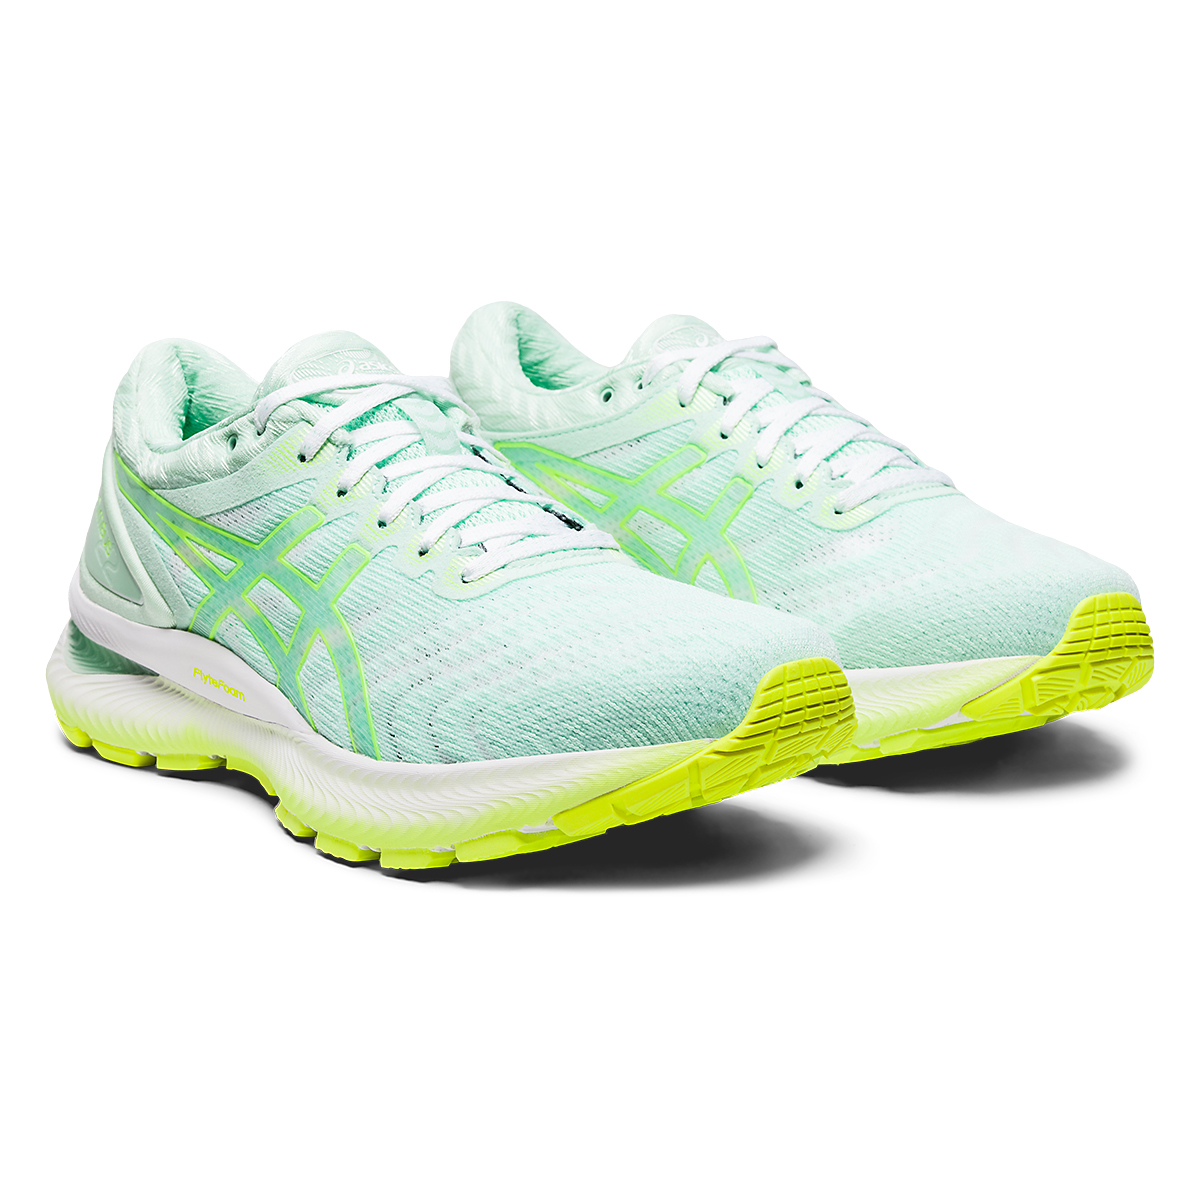 Women's Asics GEL-Nimbus 22 Modern Tokyo Running Shoe - Color: Mint Tint/Safety Yellow - Size: 5 - Width: Regular, Mint Tint/Safety Yellow, large, image 2